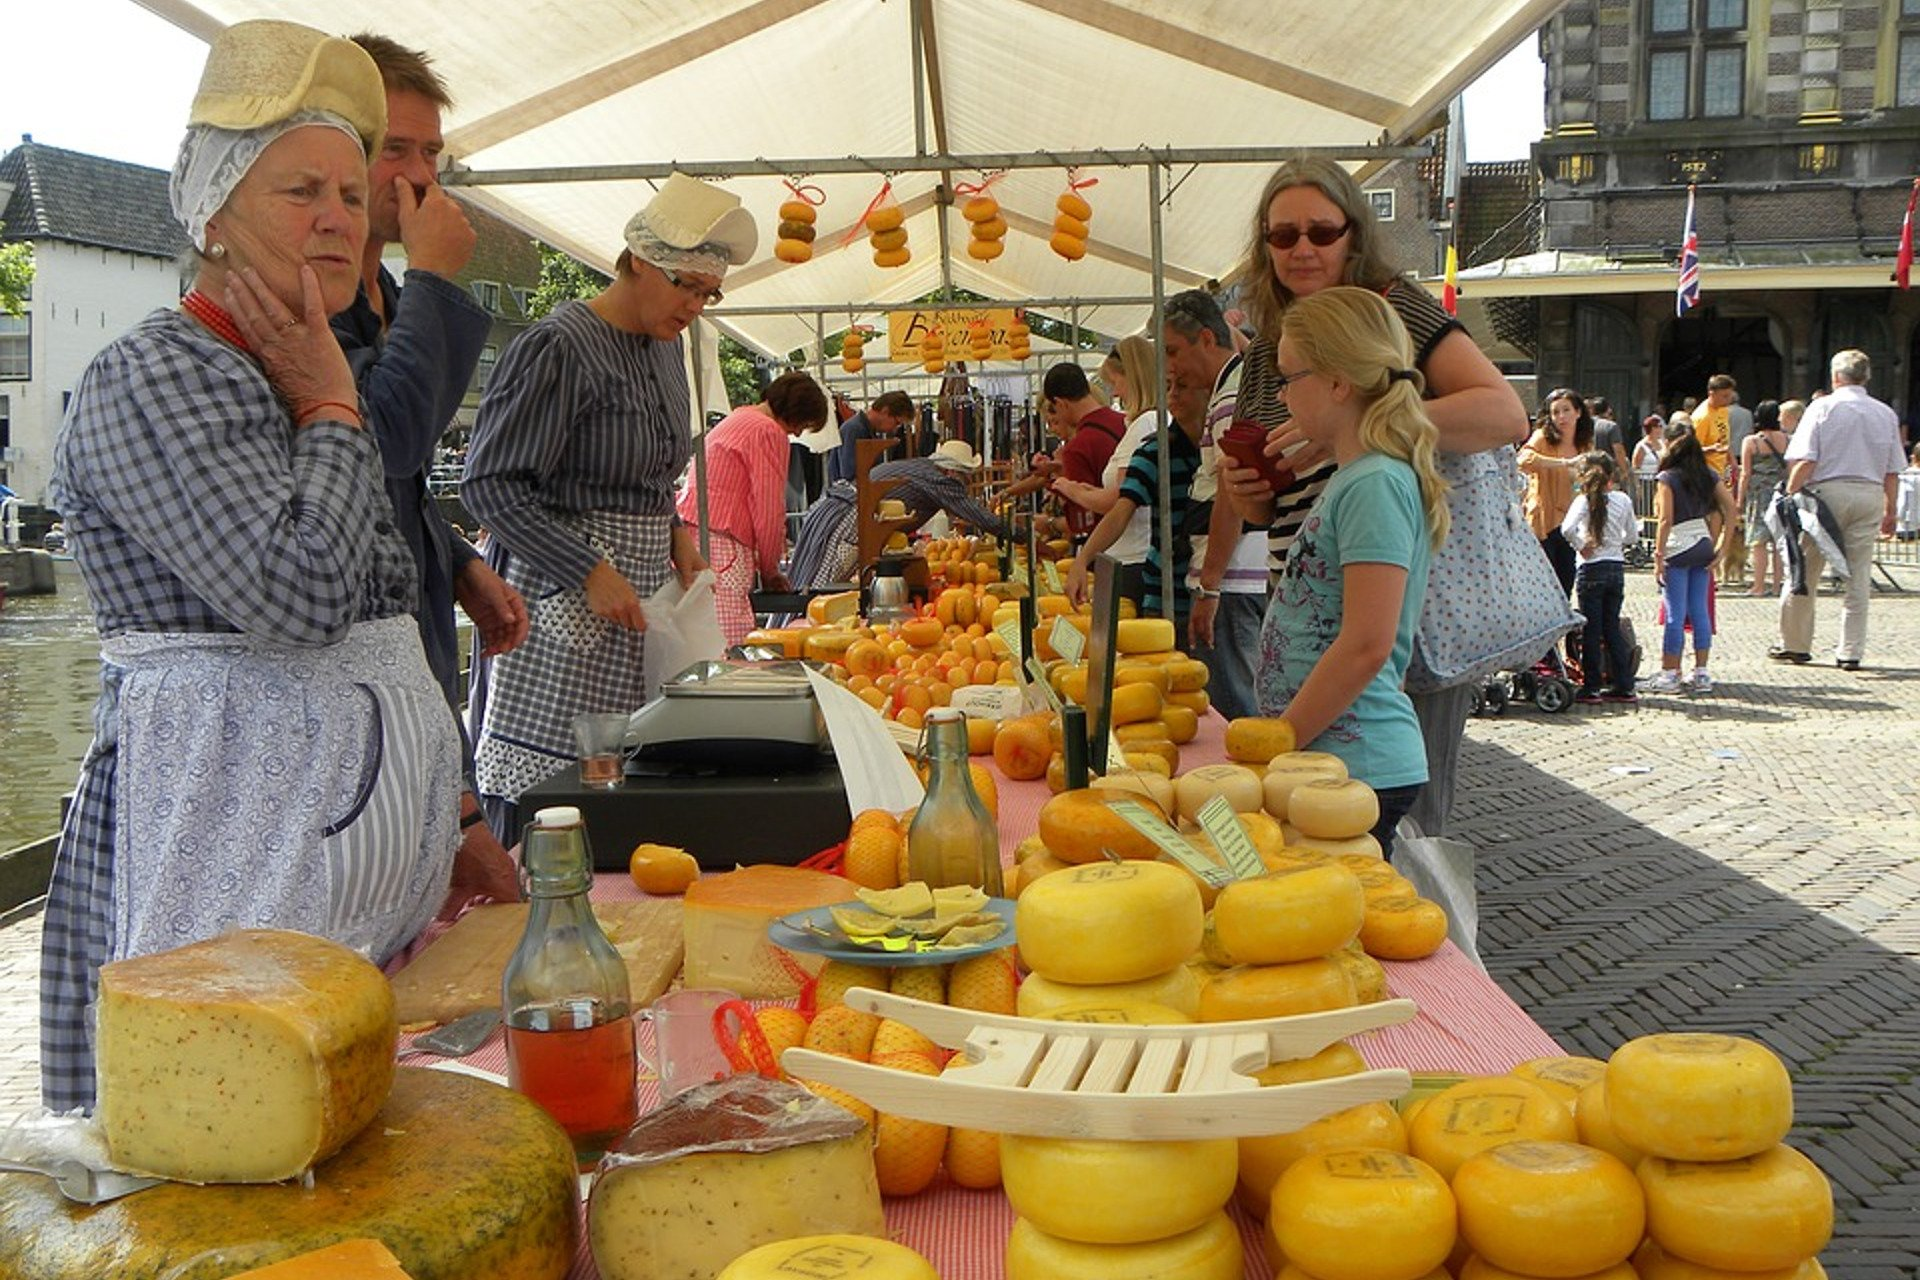 a cheese maker's stall during an open-air market